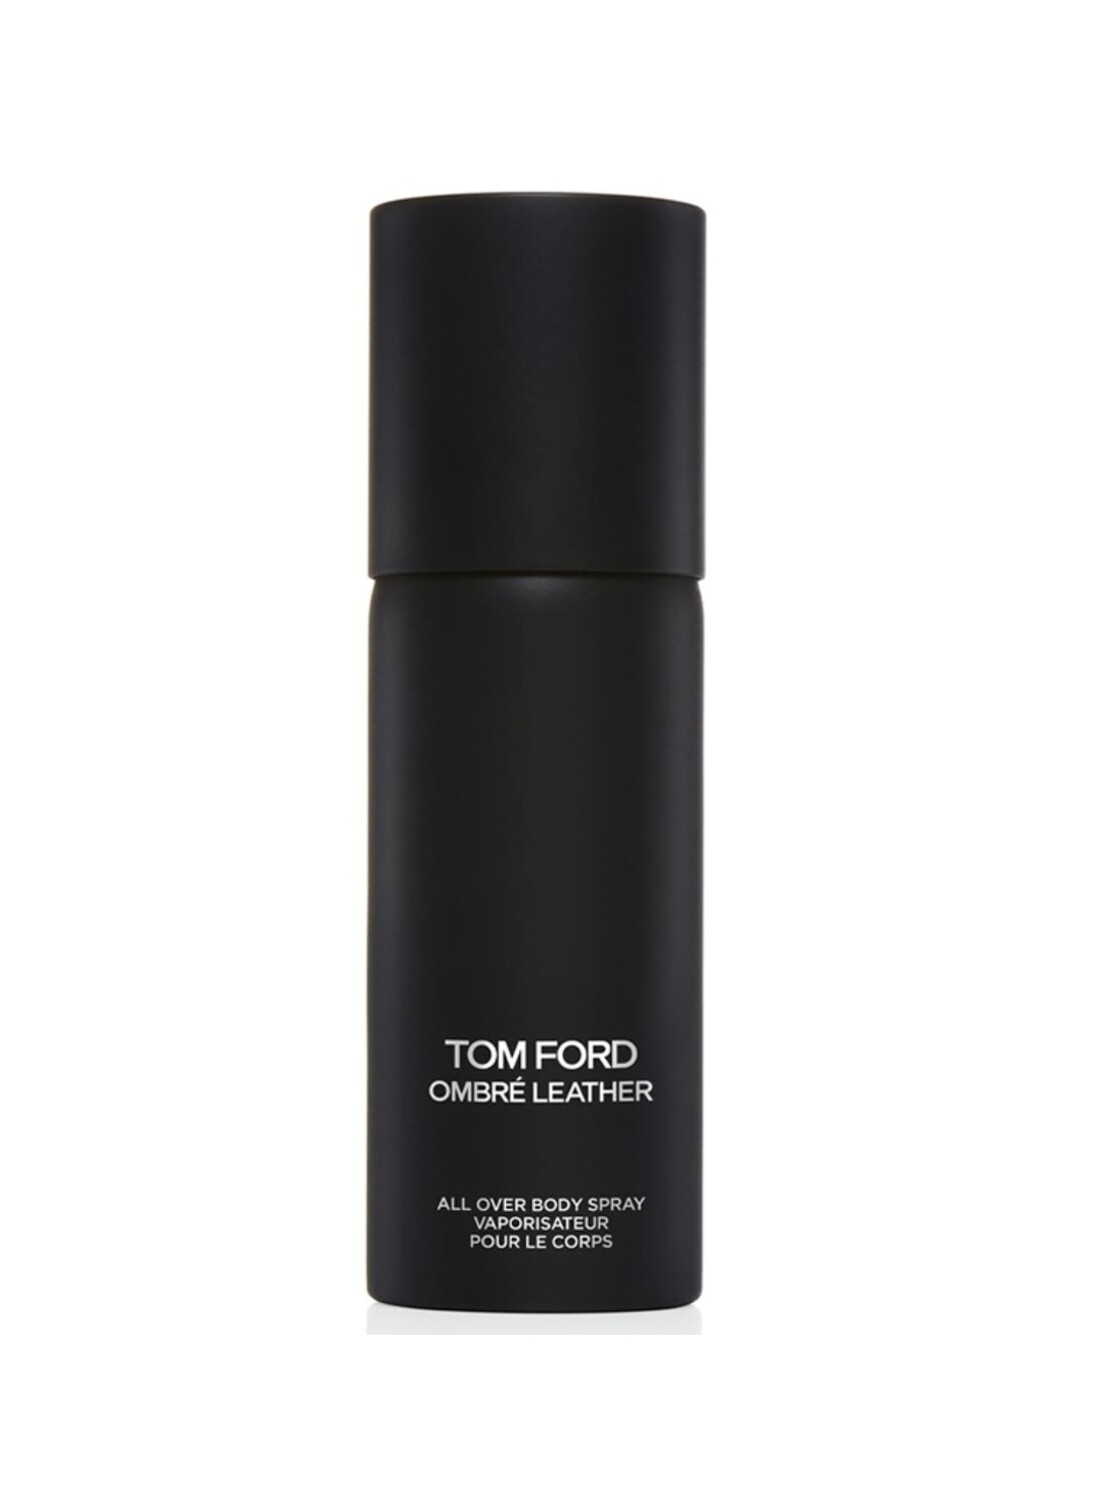 Tom Ford Ombre Leather Body Spray 150ml